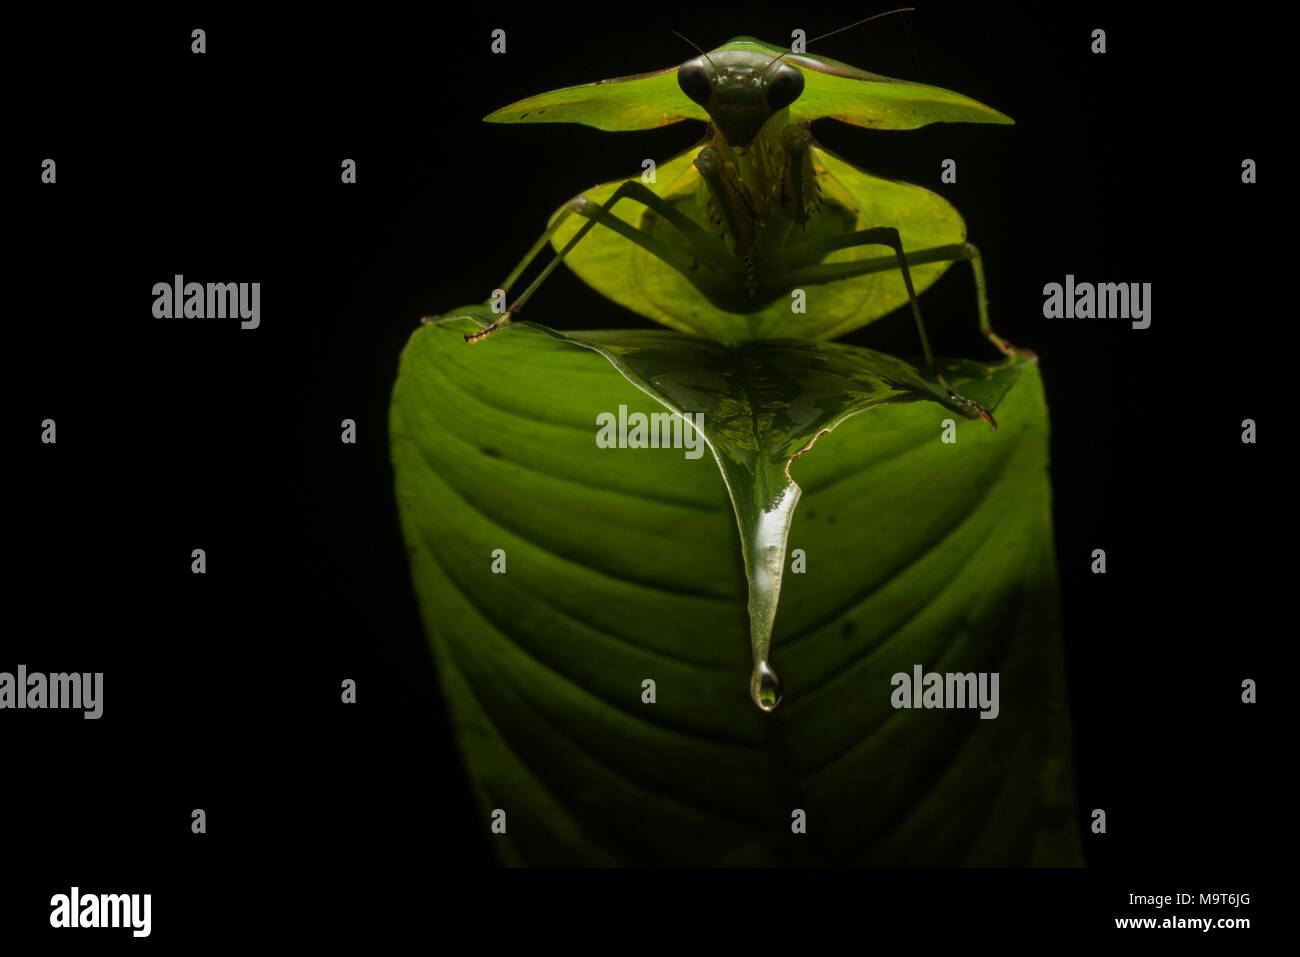 A Peruvian shield mantis sits on a leaf in the jungle, using an external flash acheived a cool backlighting effect which made the mantis more dramatic - Stock Image